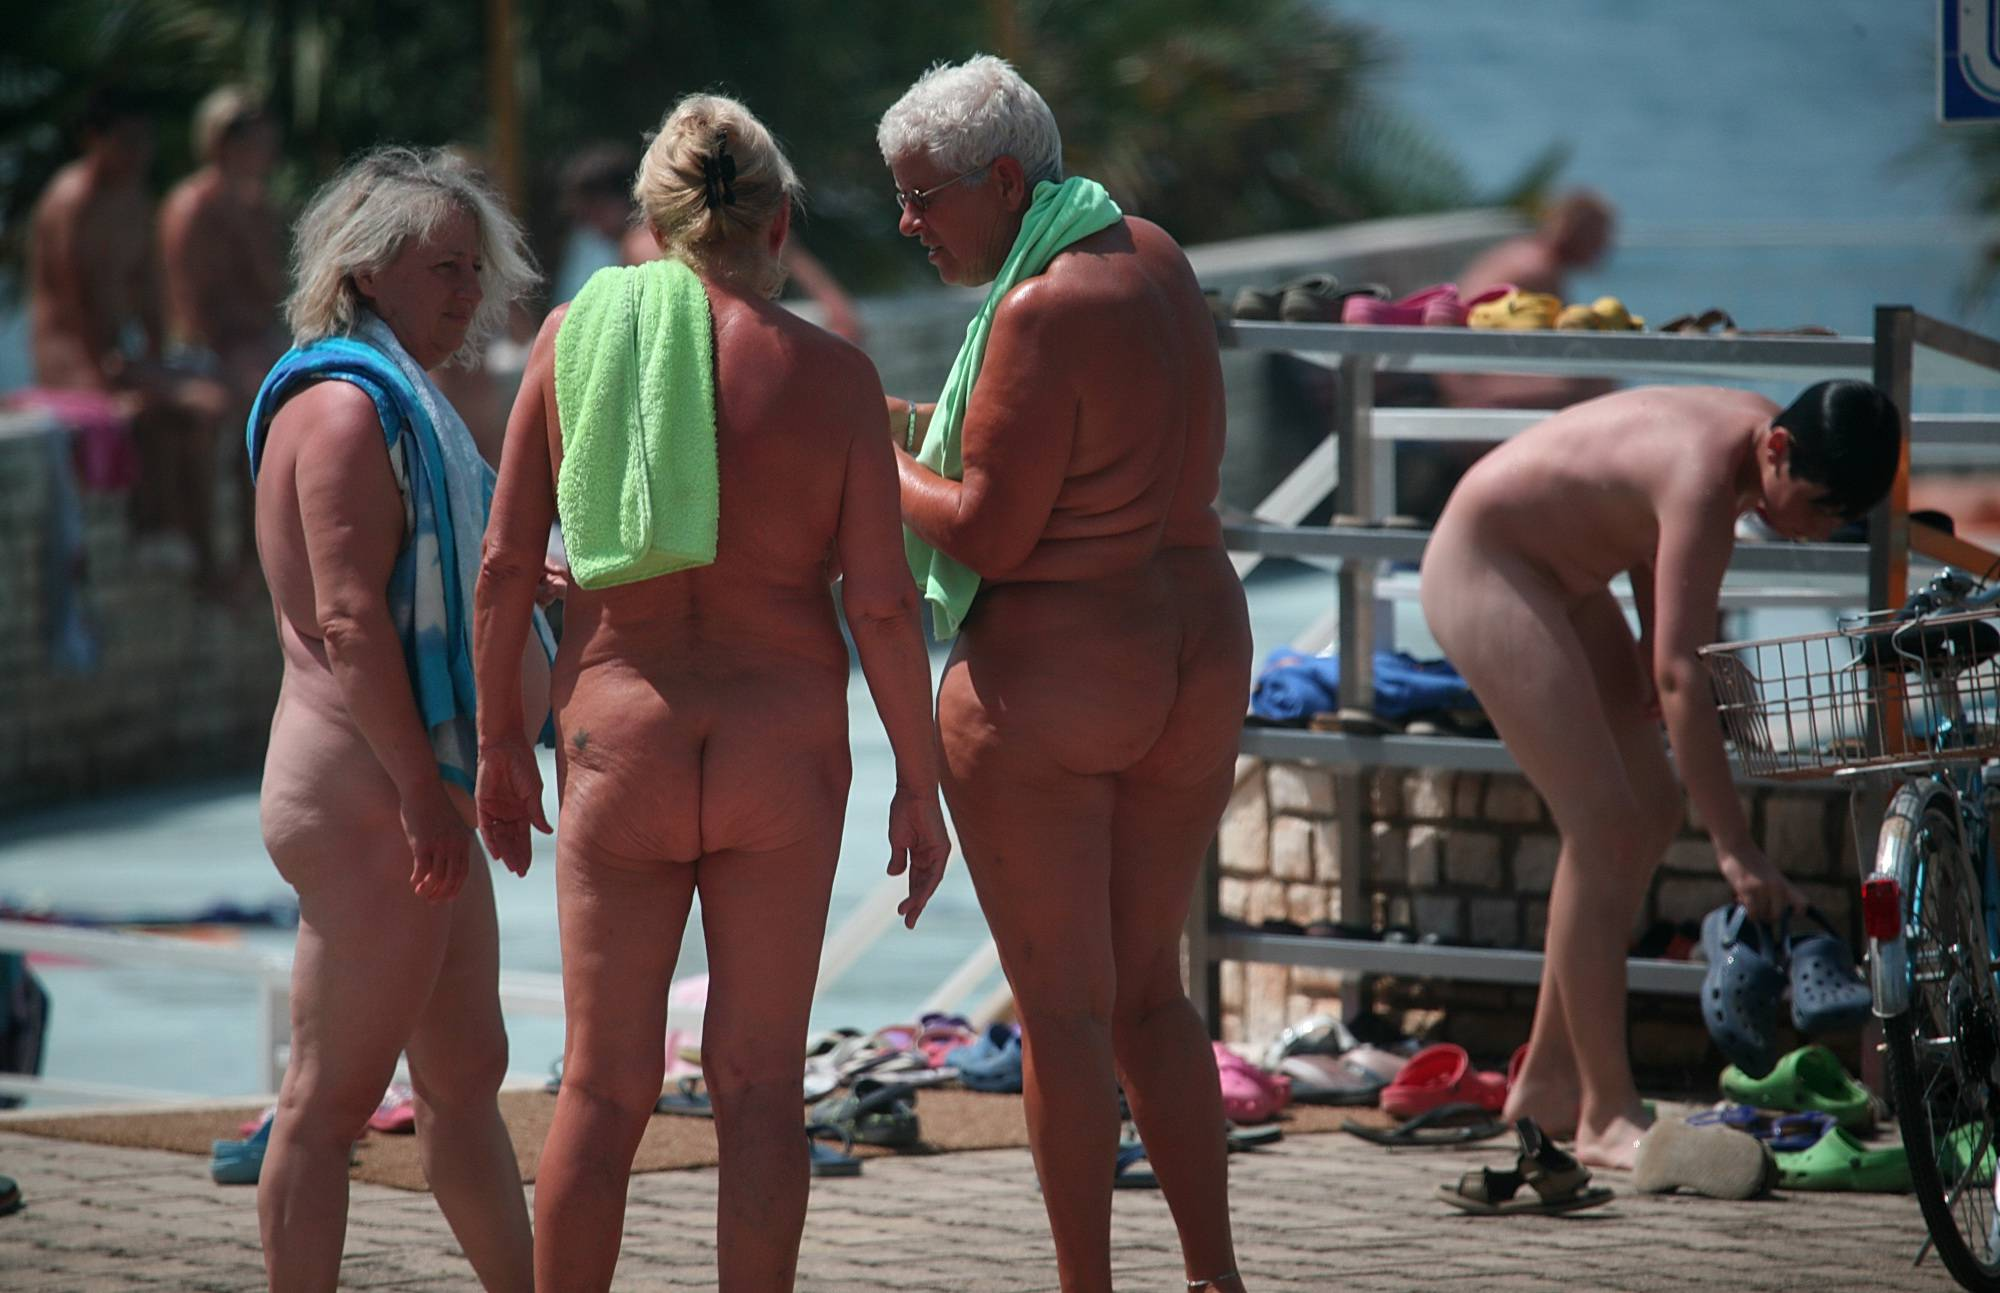 Purenudism-Summery Day At The Pool - 1